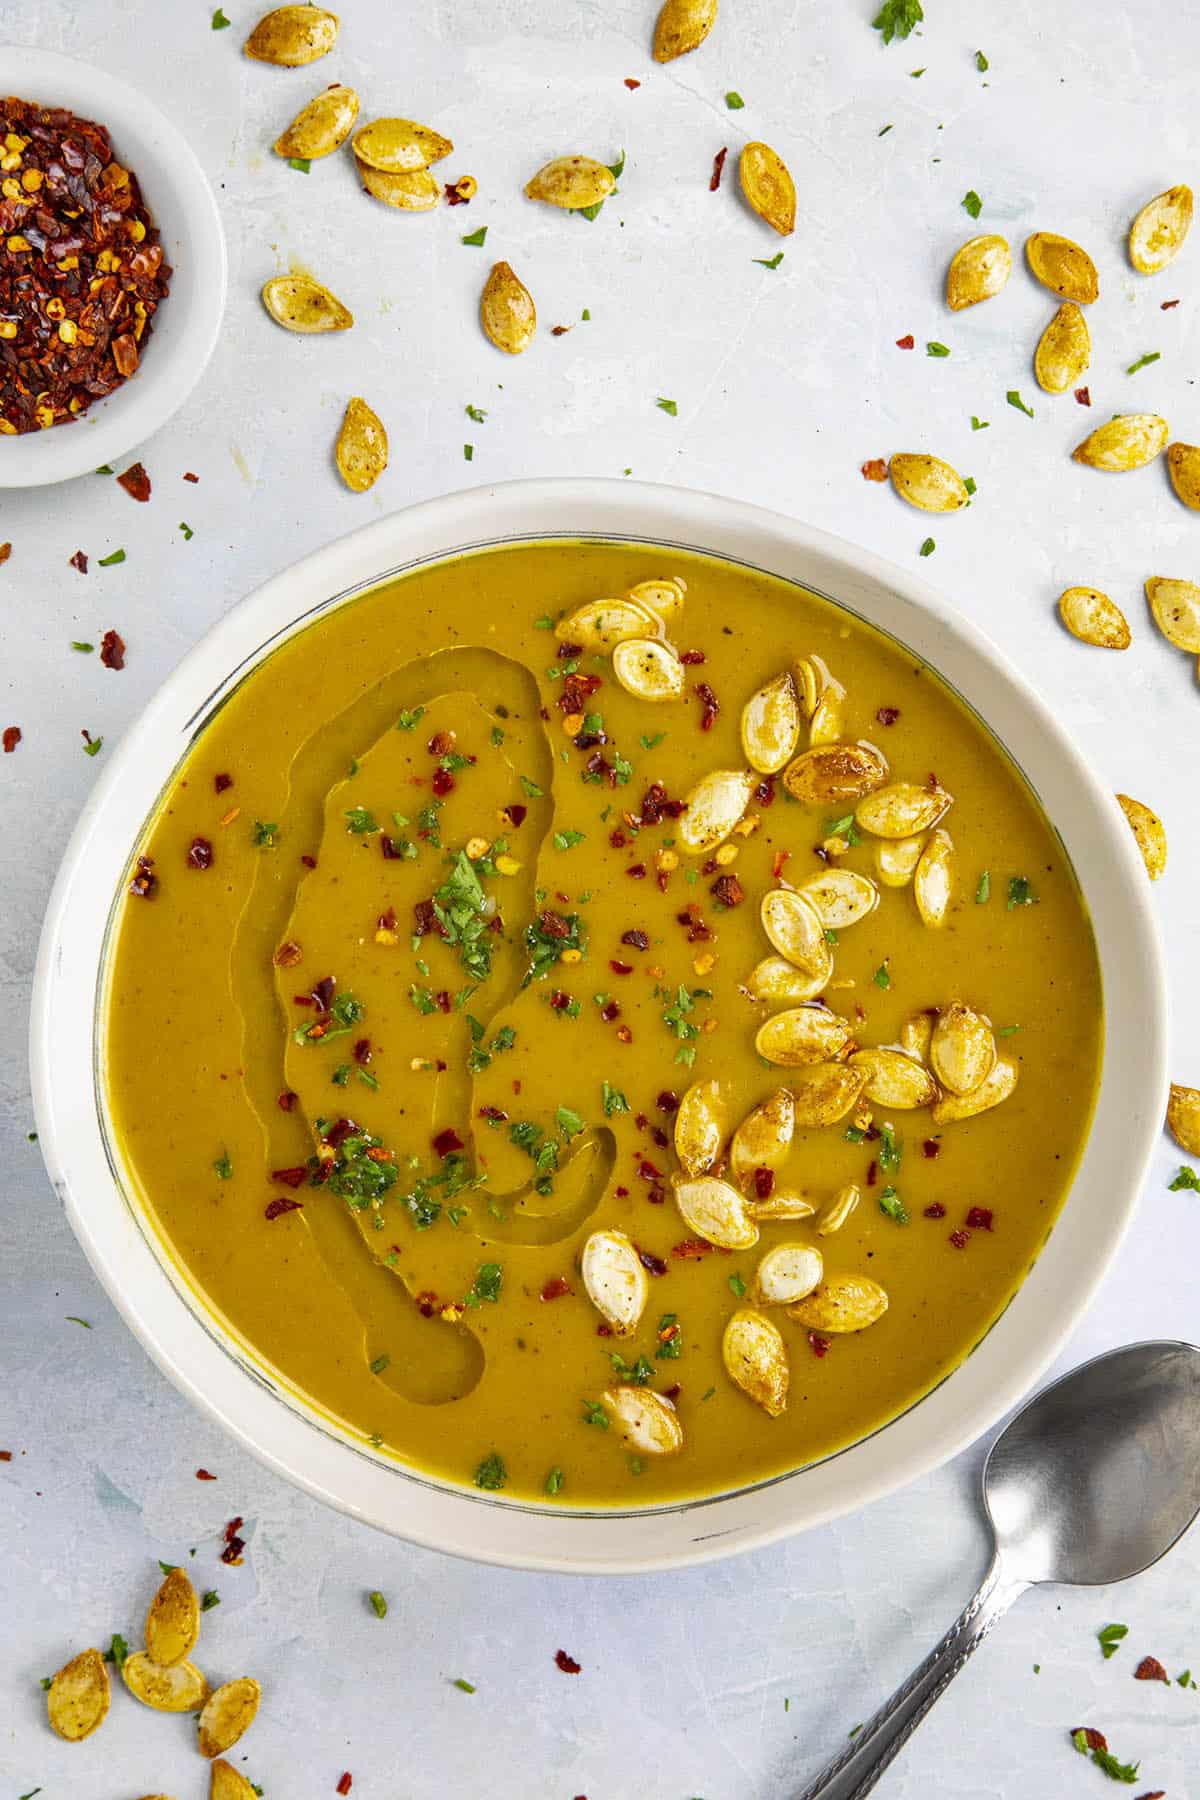 Spicy Pumpkin Soup in a bowl